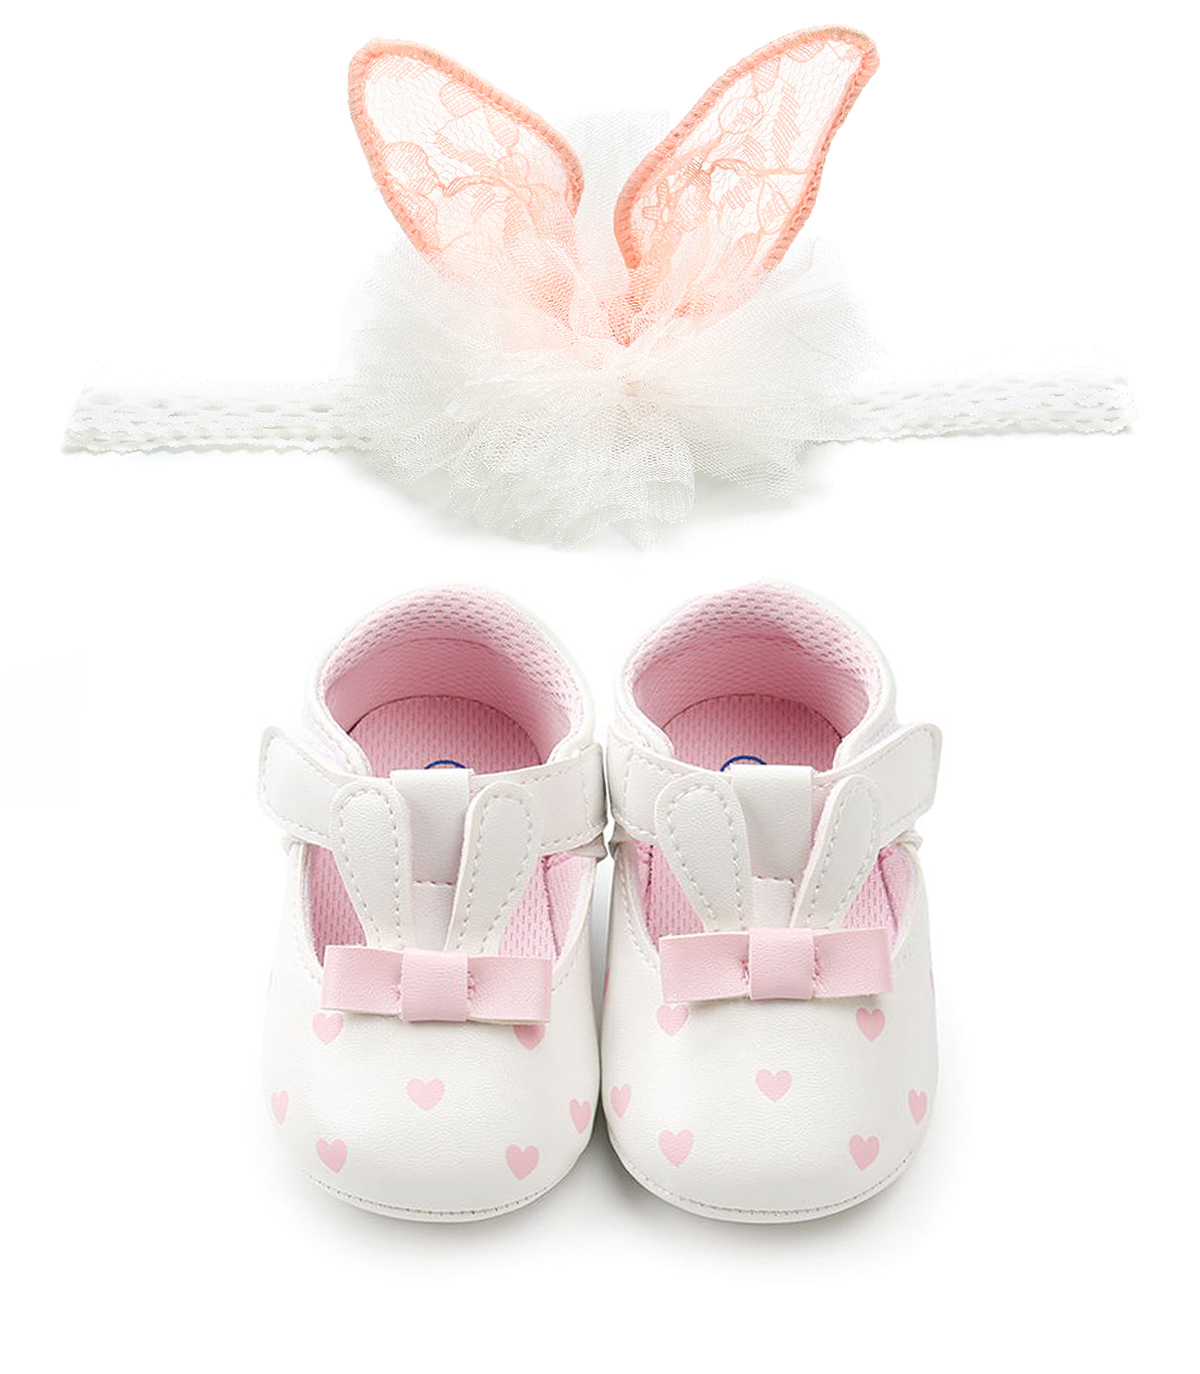 walking shoes for baby girl,